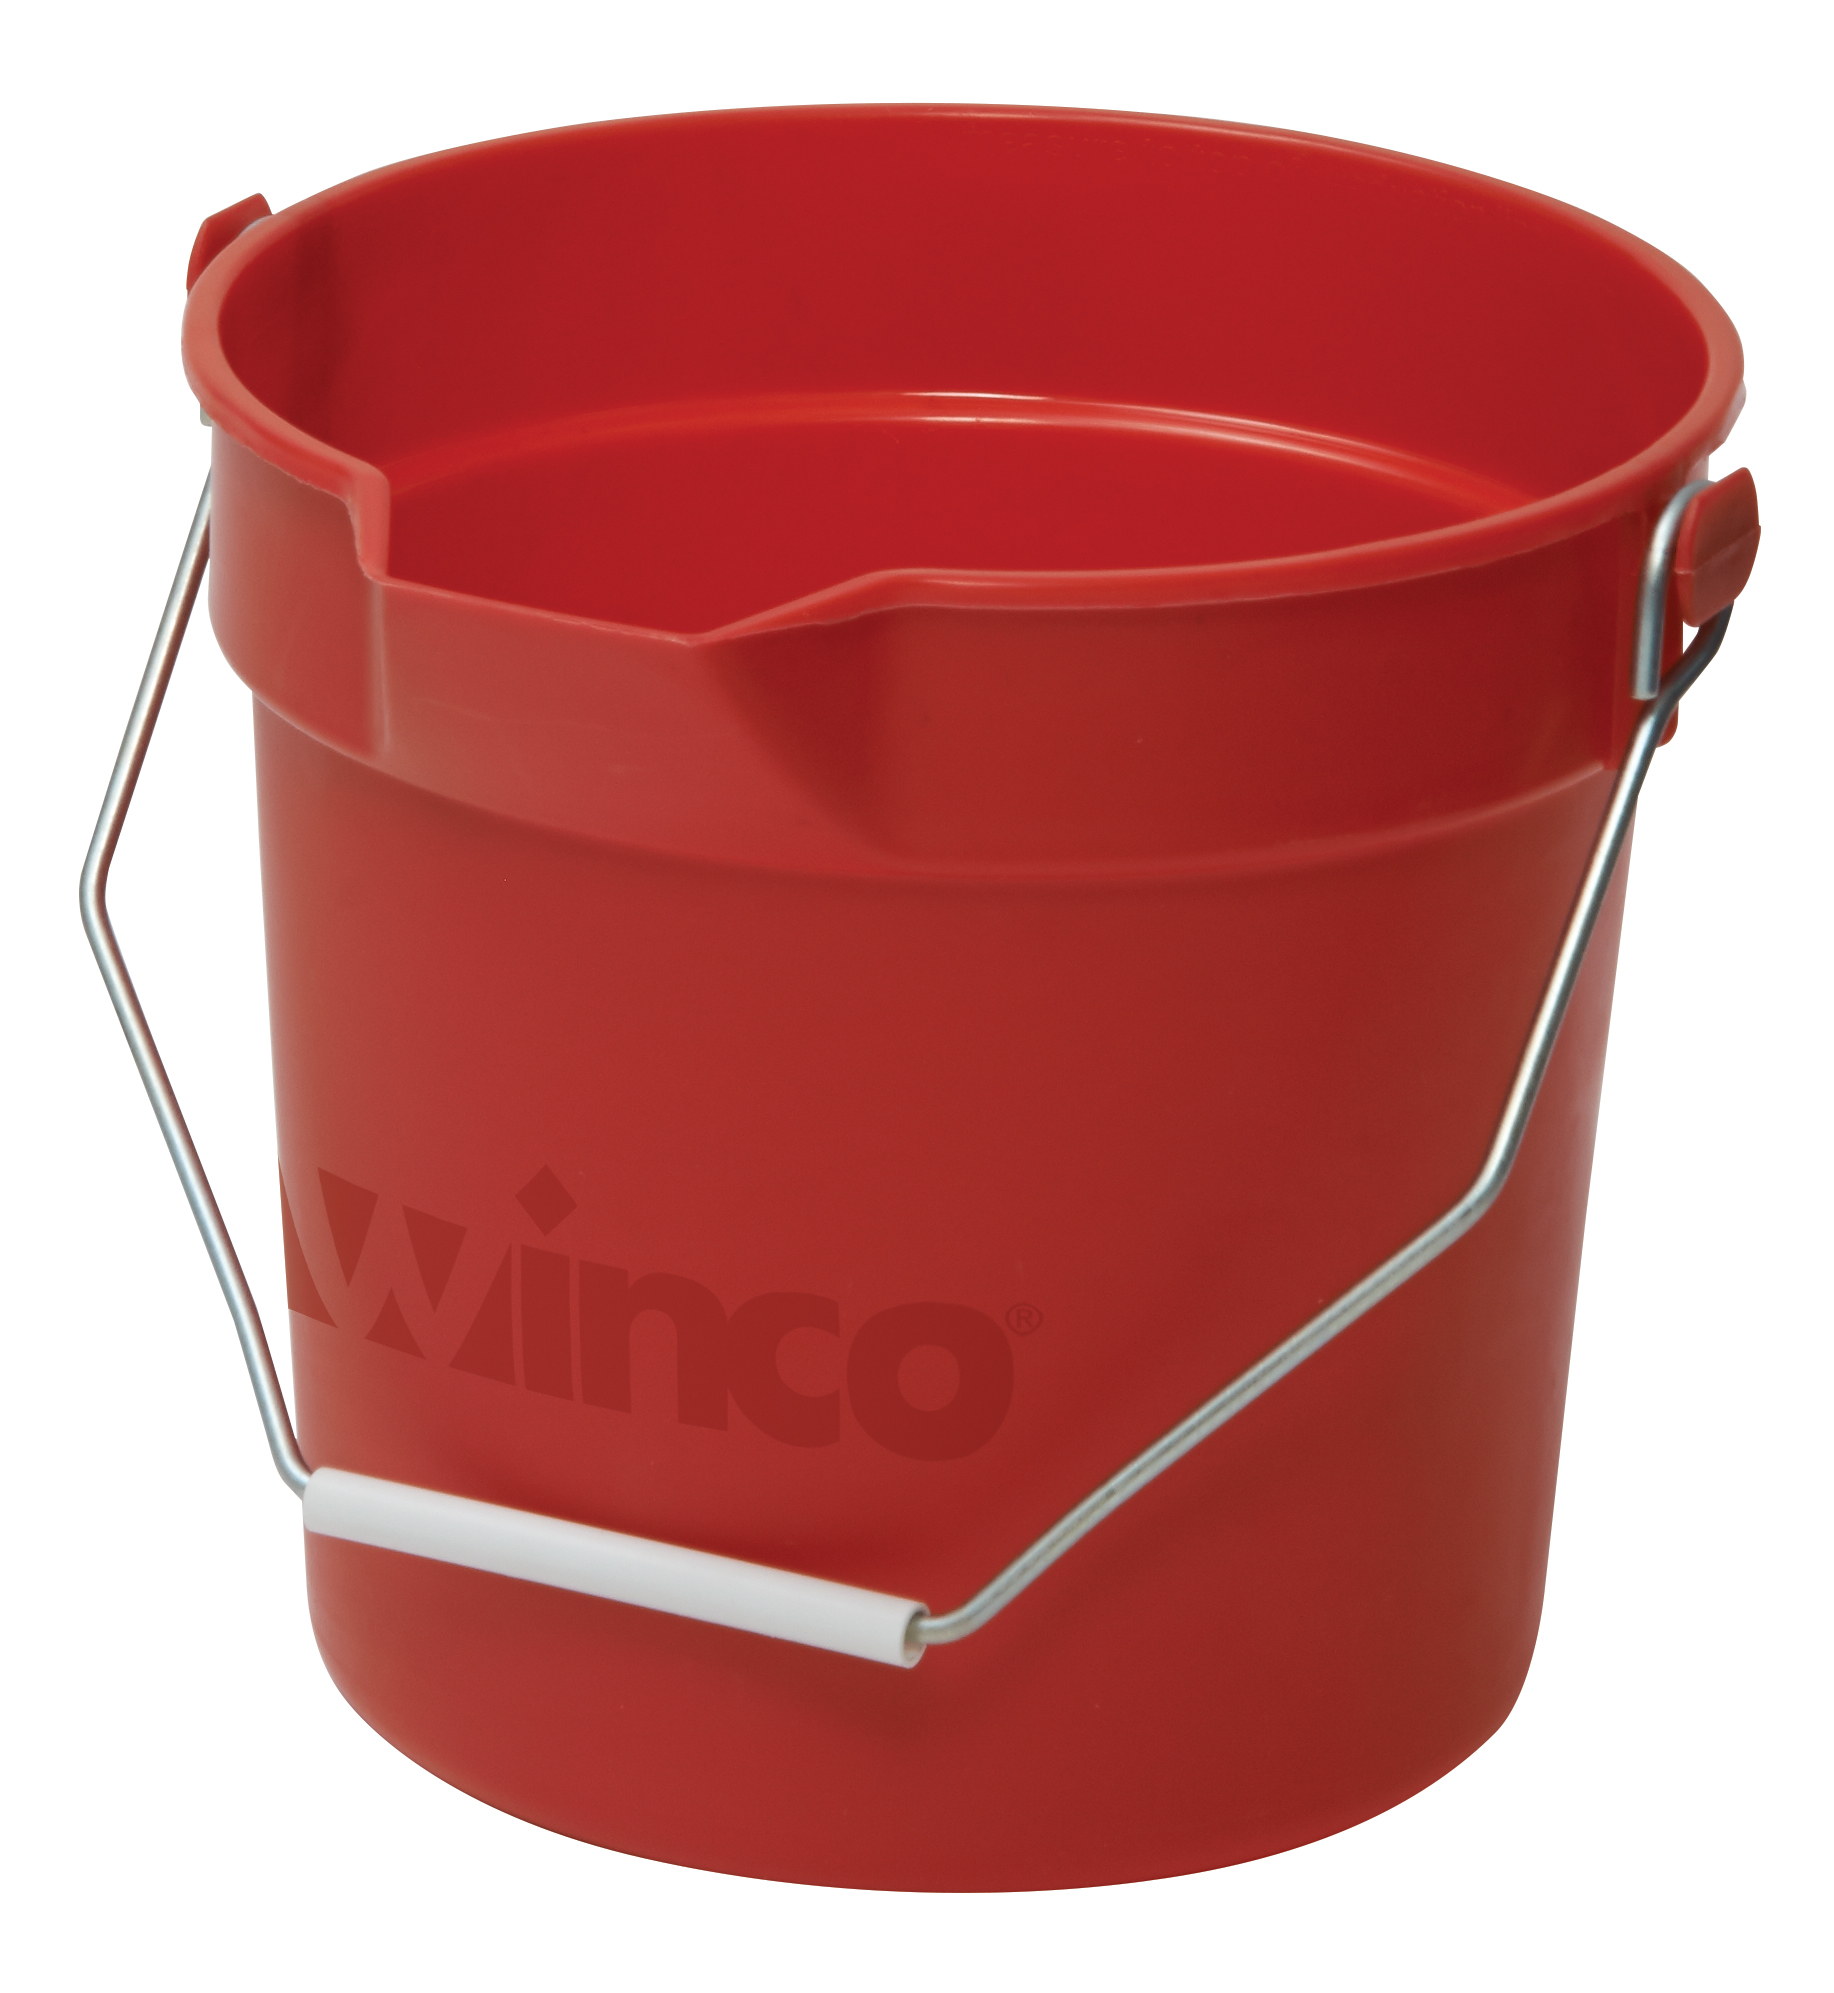 Winco UPP-14R janitorial accessories